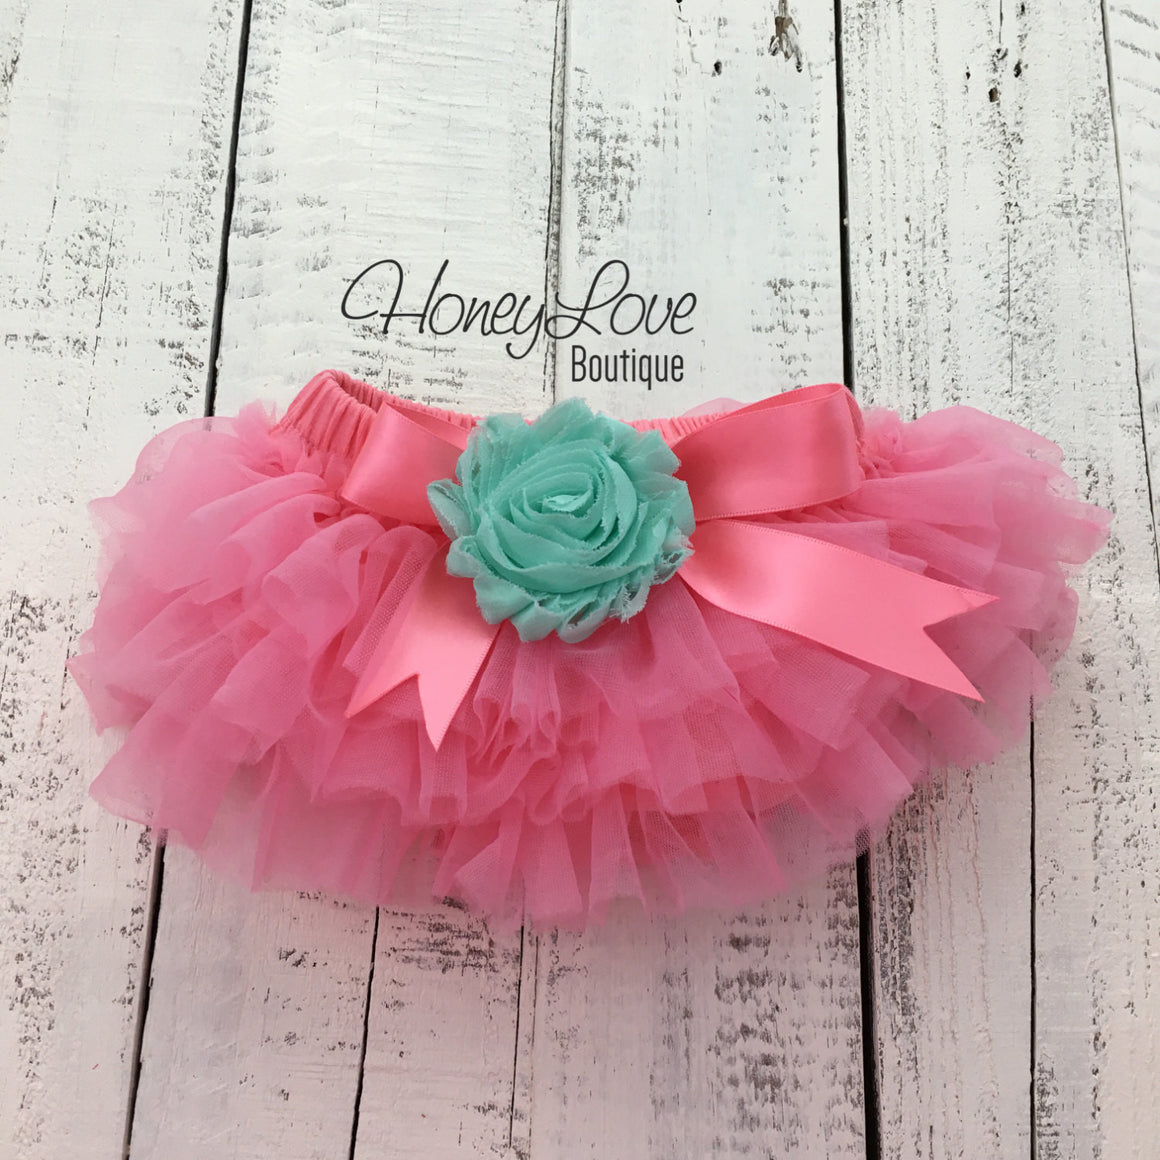 Coral Pink/Mint/Aqua Embellished tutu skirt bloomers - HoneyLoveBoutique